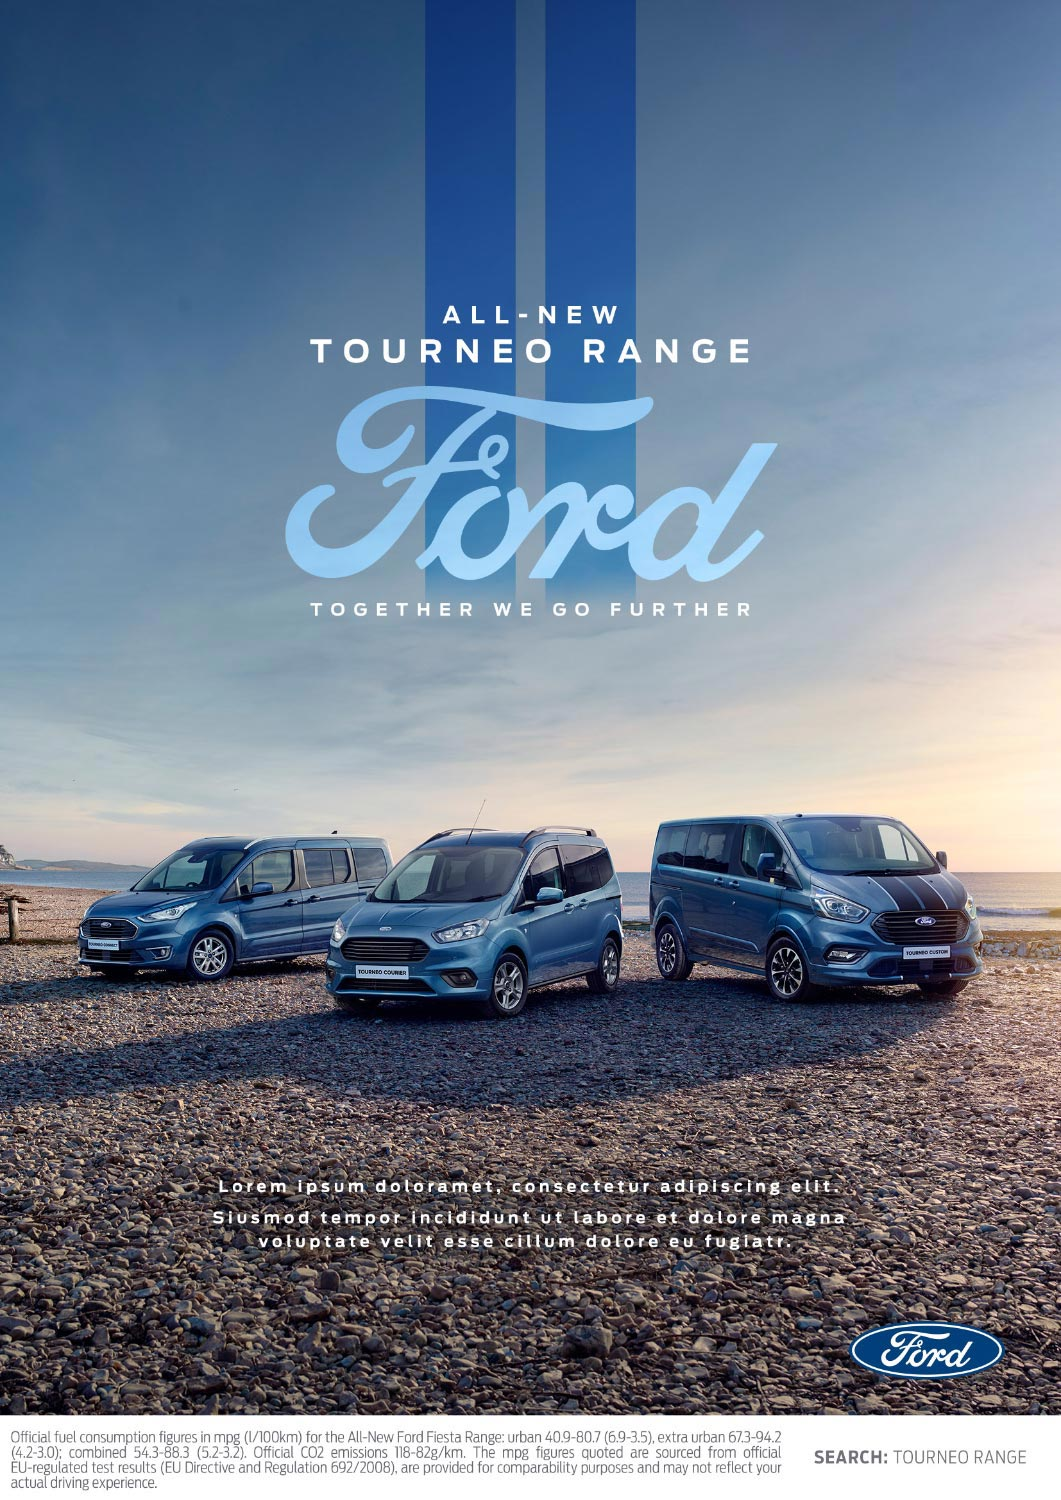 Mark Bramley Ford Torneo Campaign